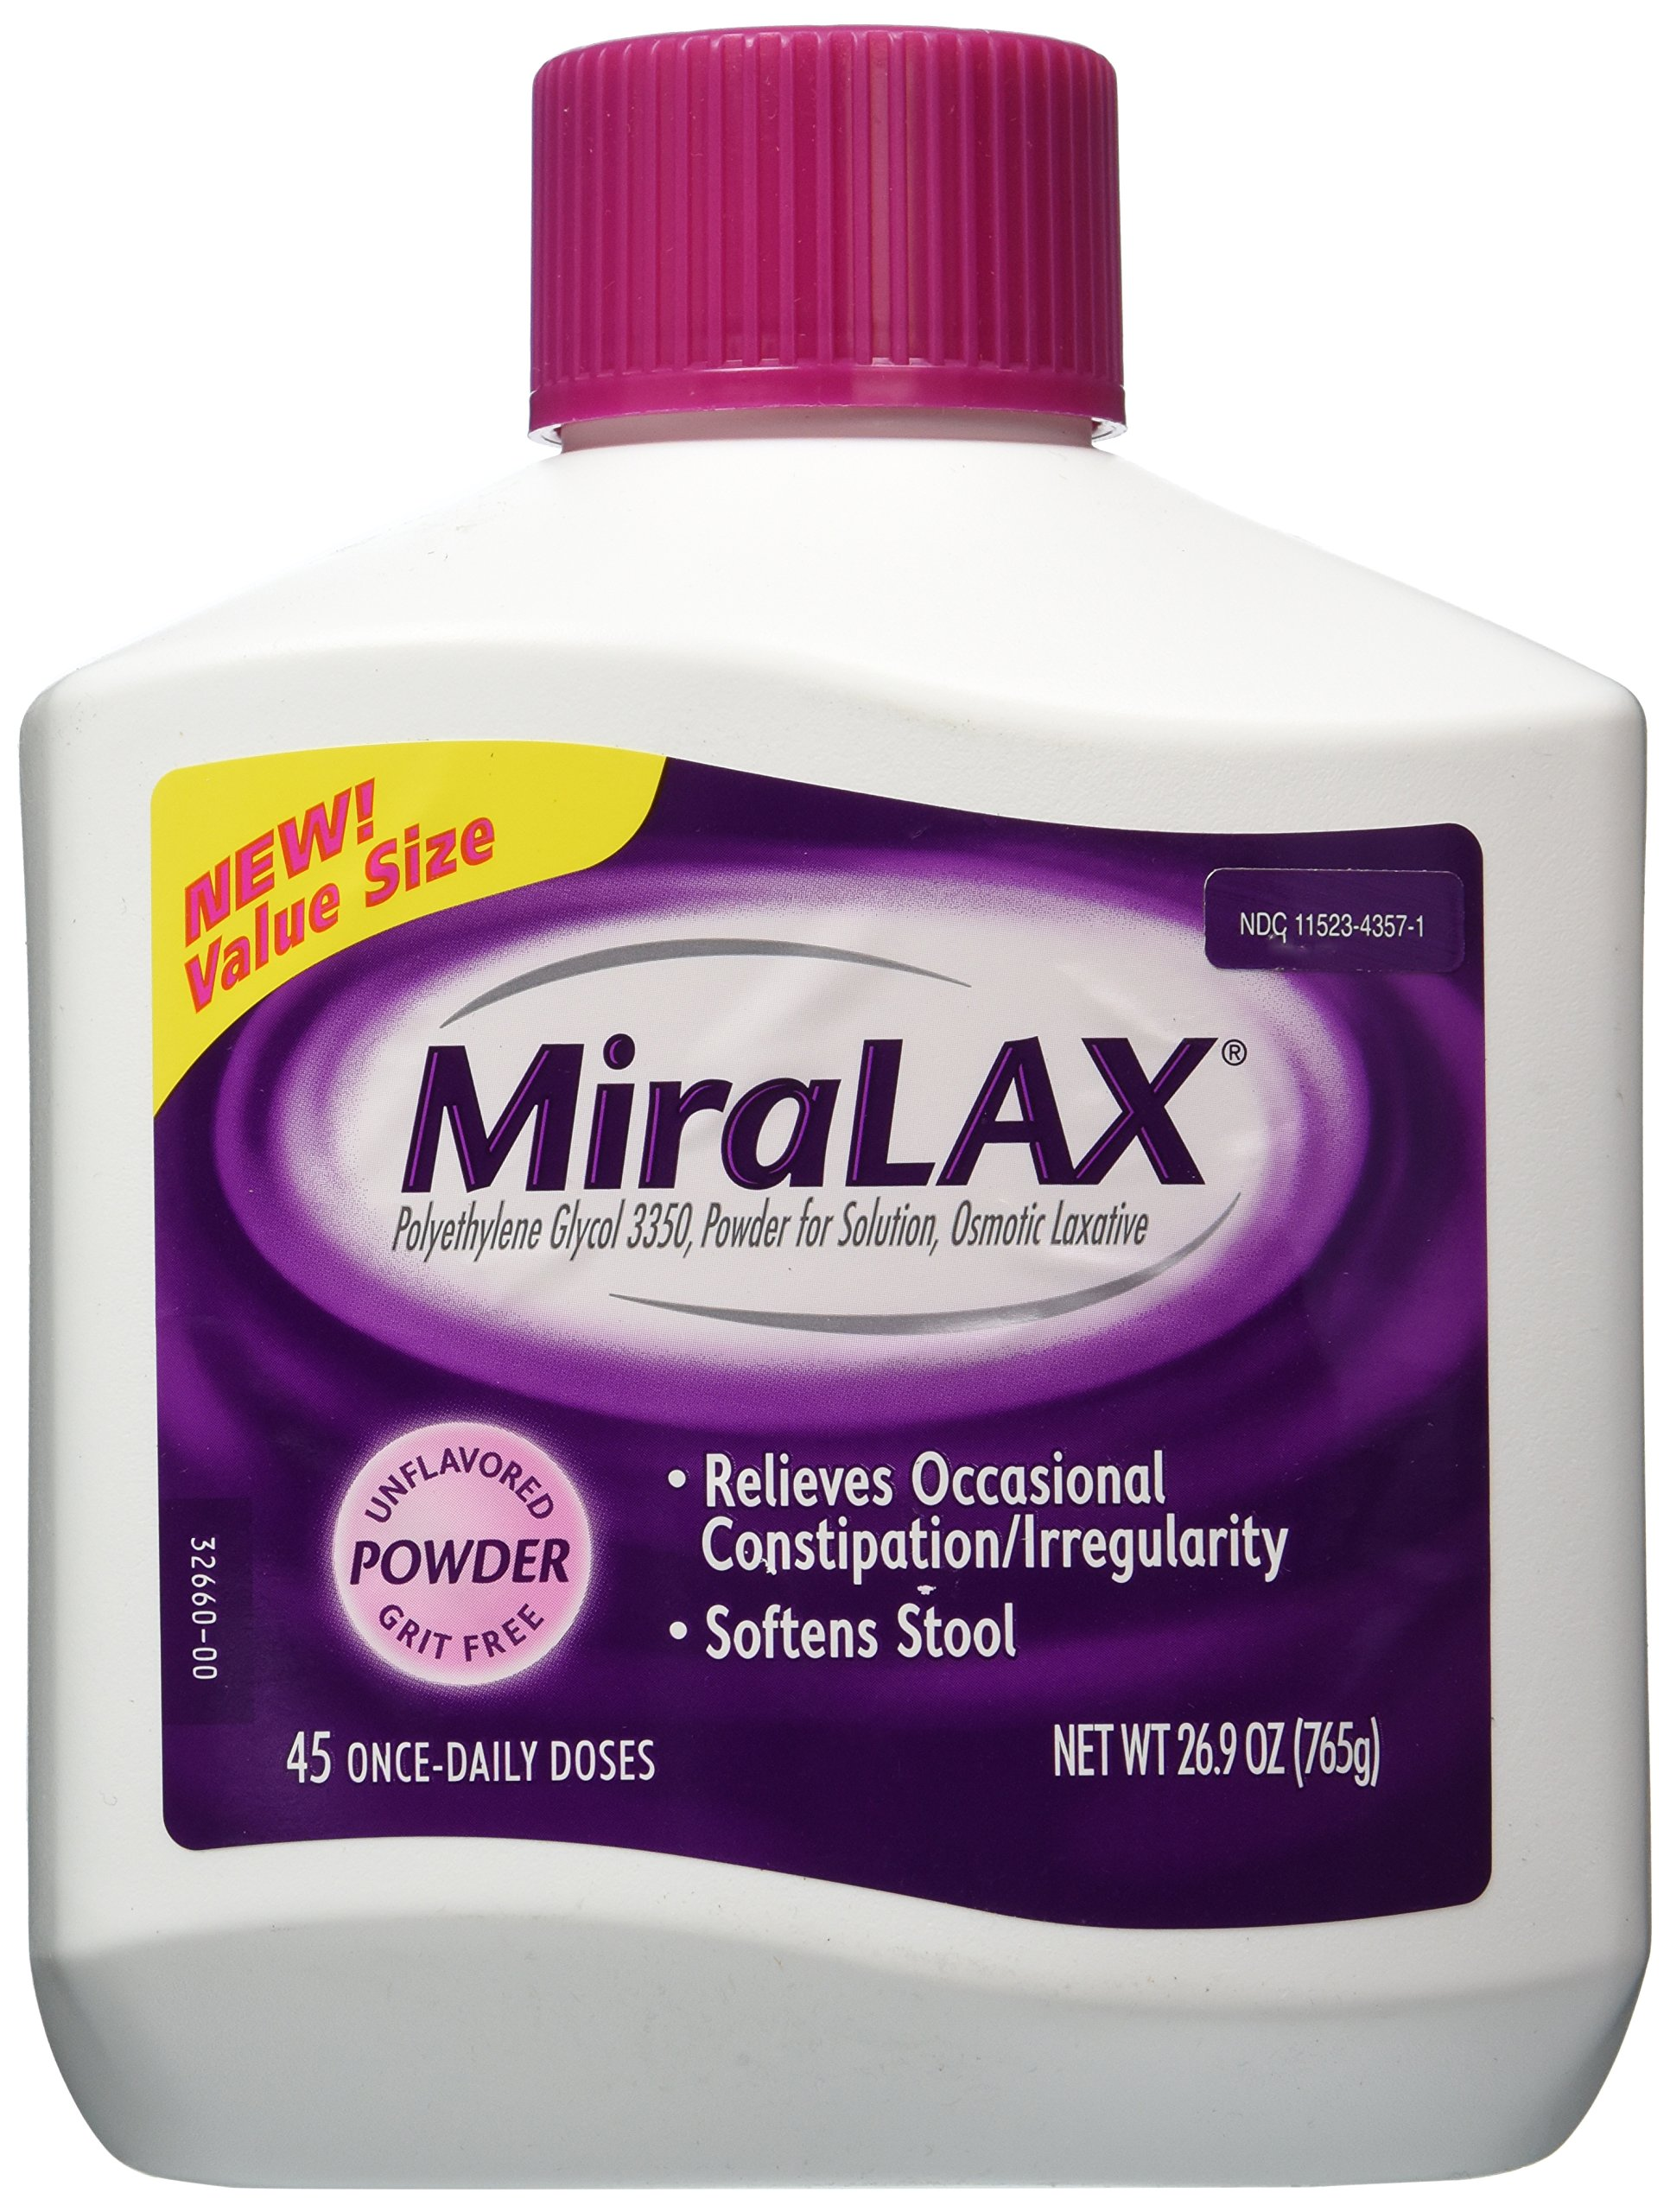 Miralax 45 Dose Powder Laxative, 26.9 Ounce by Miralax